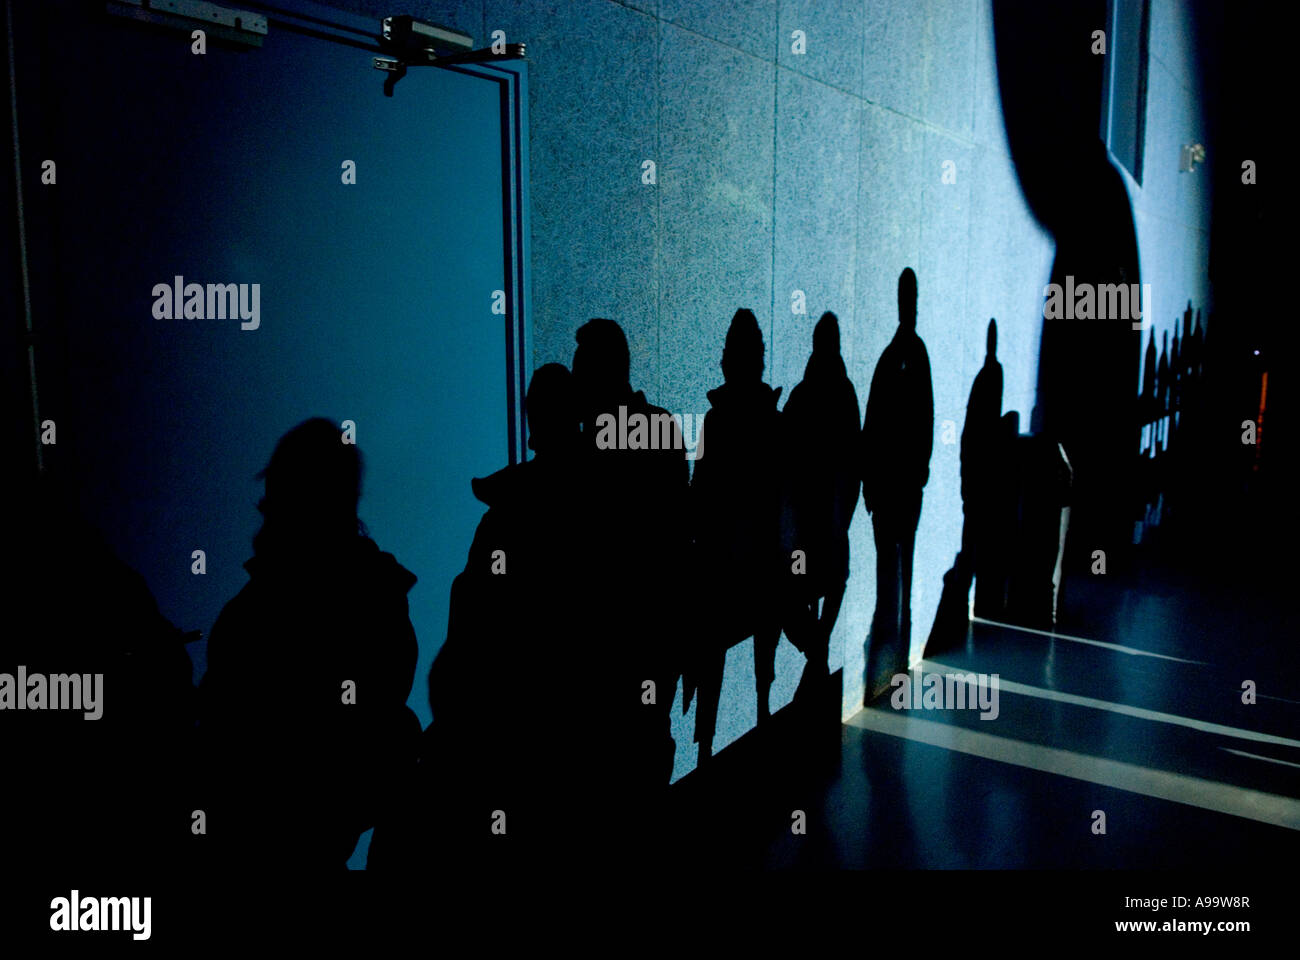 439 a line of full length shadows of people on a wall - Stock Image